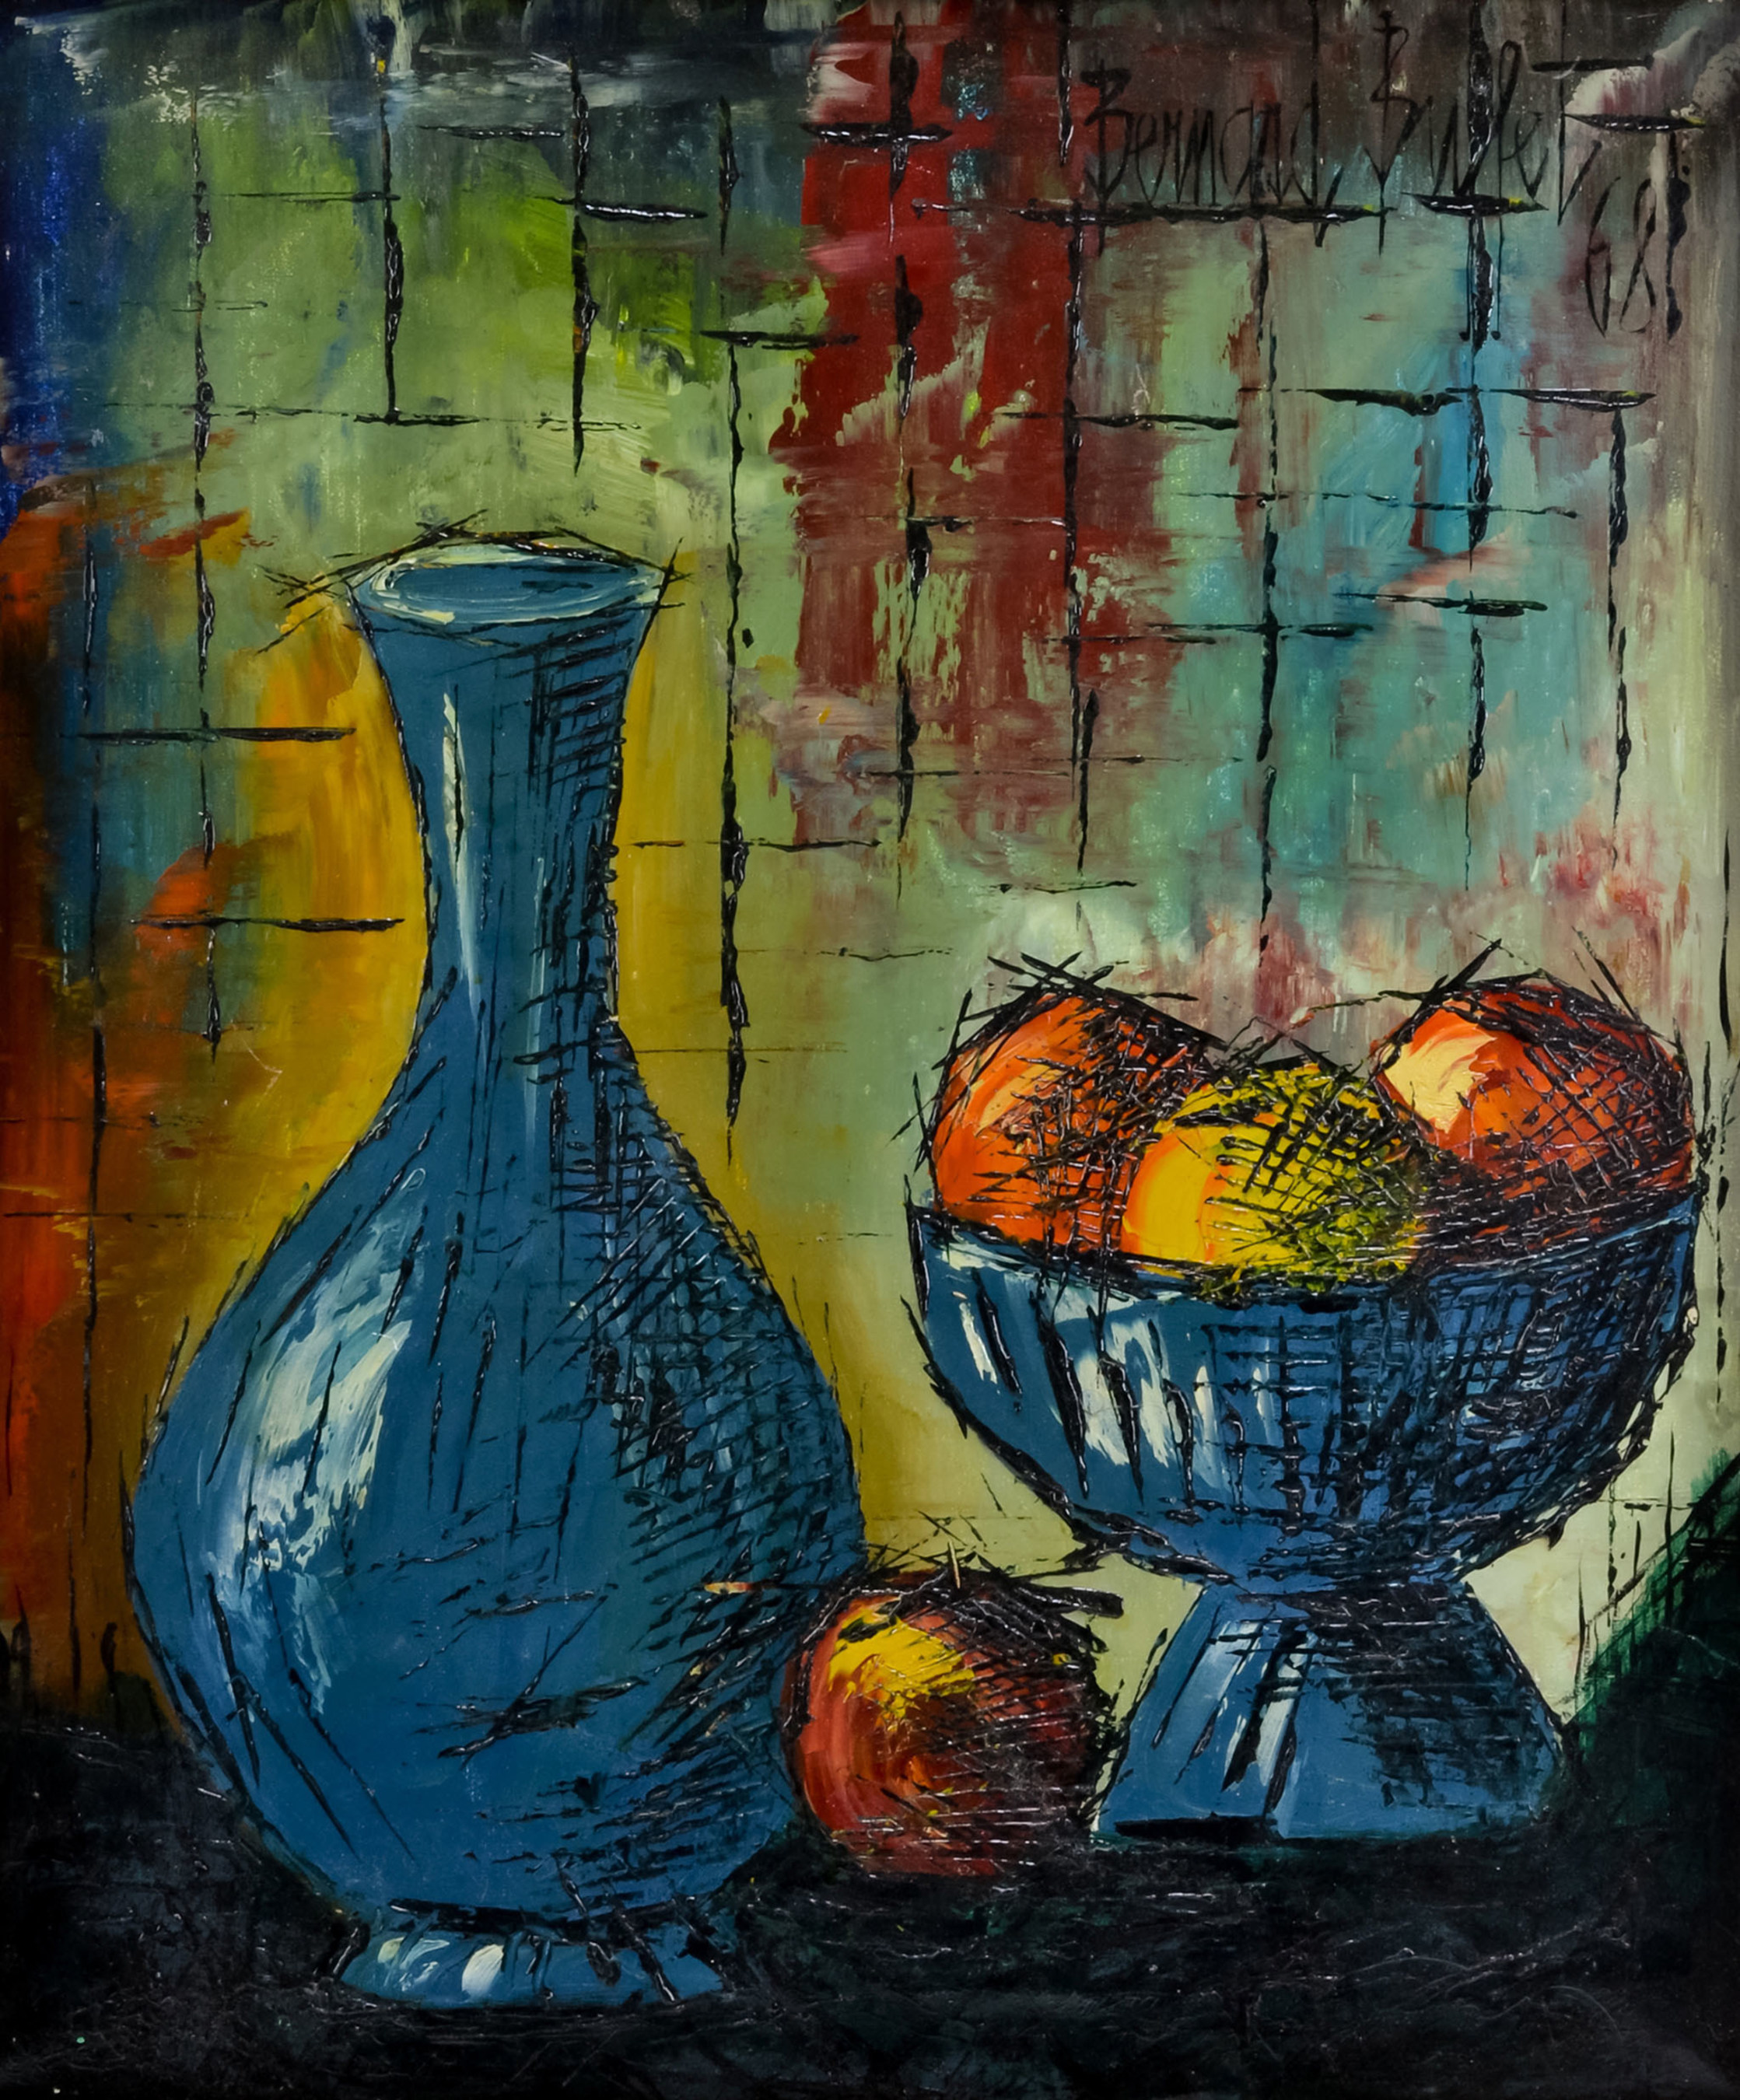 """J. Levine Auction & Appraisal's Summer Catalog Auction on Thurs., July 30 features many pieces of fine art, including several Diego Rivera pastels, four Dave McGary sculptures and this """"Still Life"""" oil painting by French artist Bernard Buffet. Bidders can register online now or bid on July 30 in person at the Scottsdale, Arizona auction house, online or via phone. www.jlevines.com"""